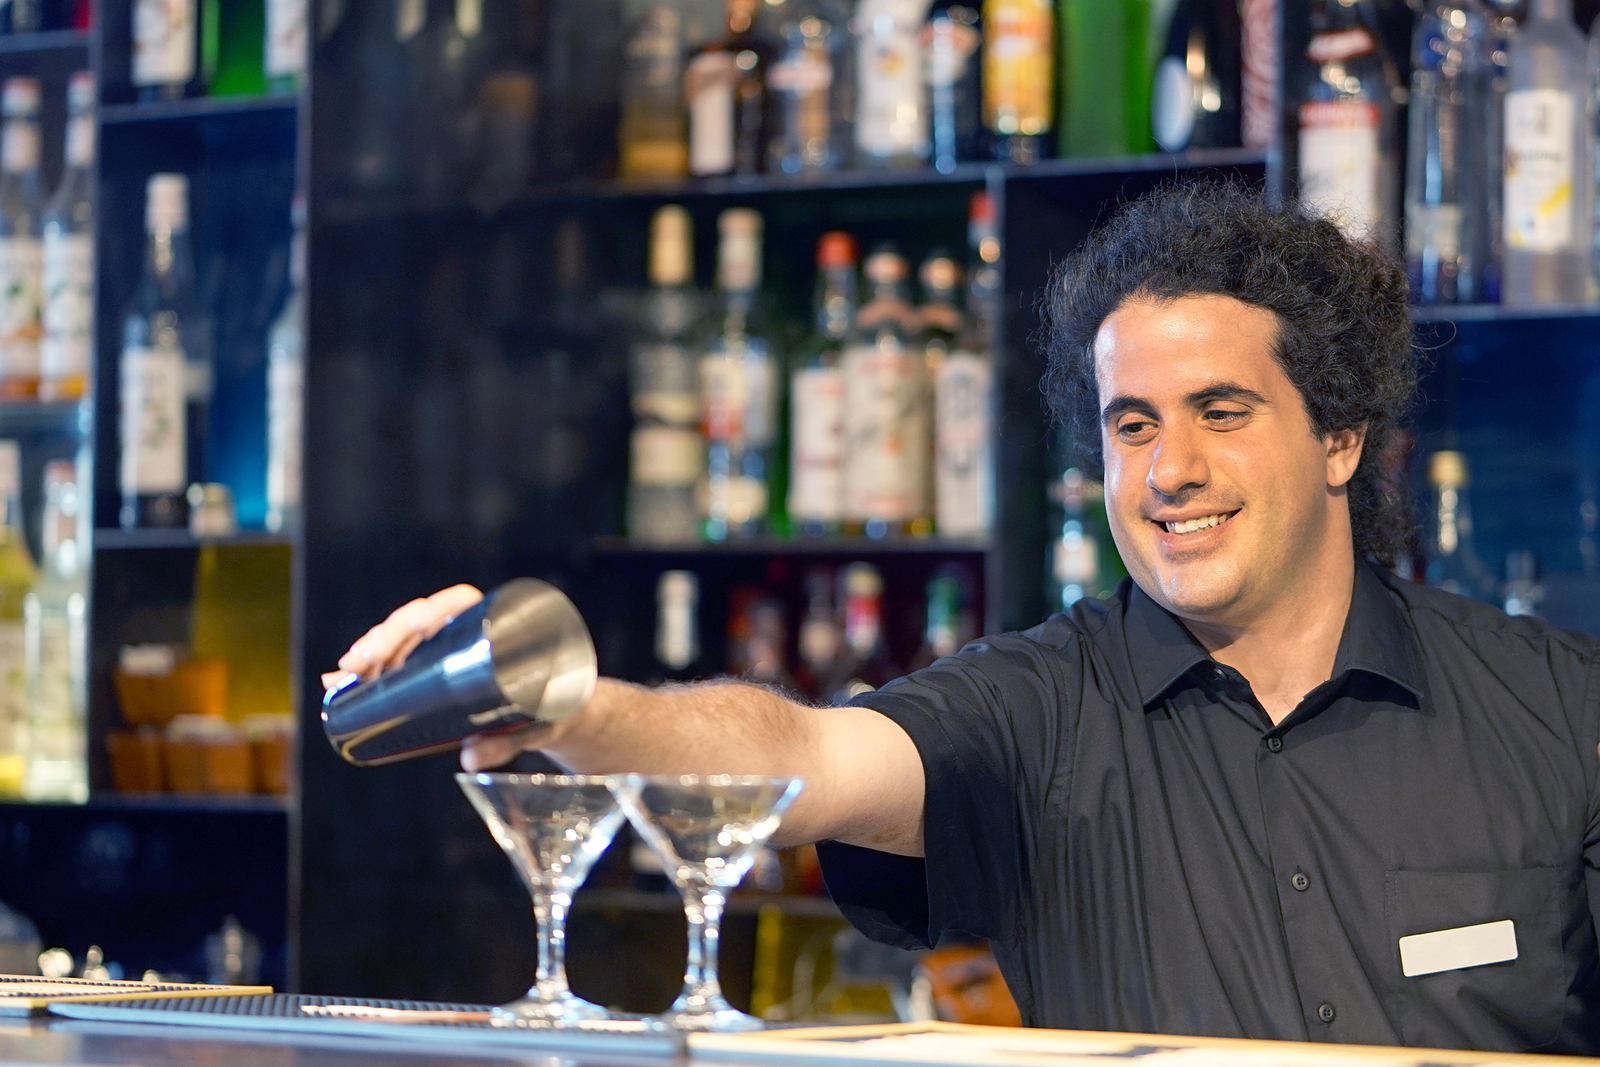 A smiling hotel bartender pouring drinks.